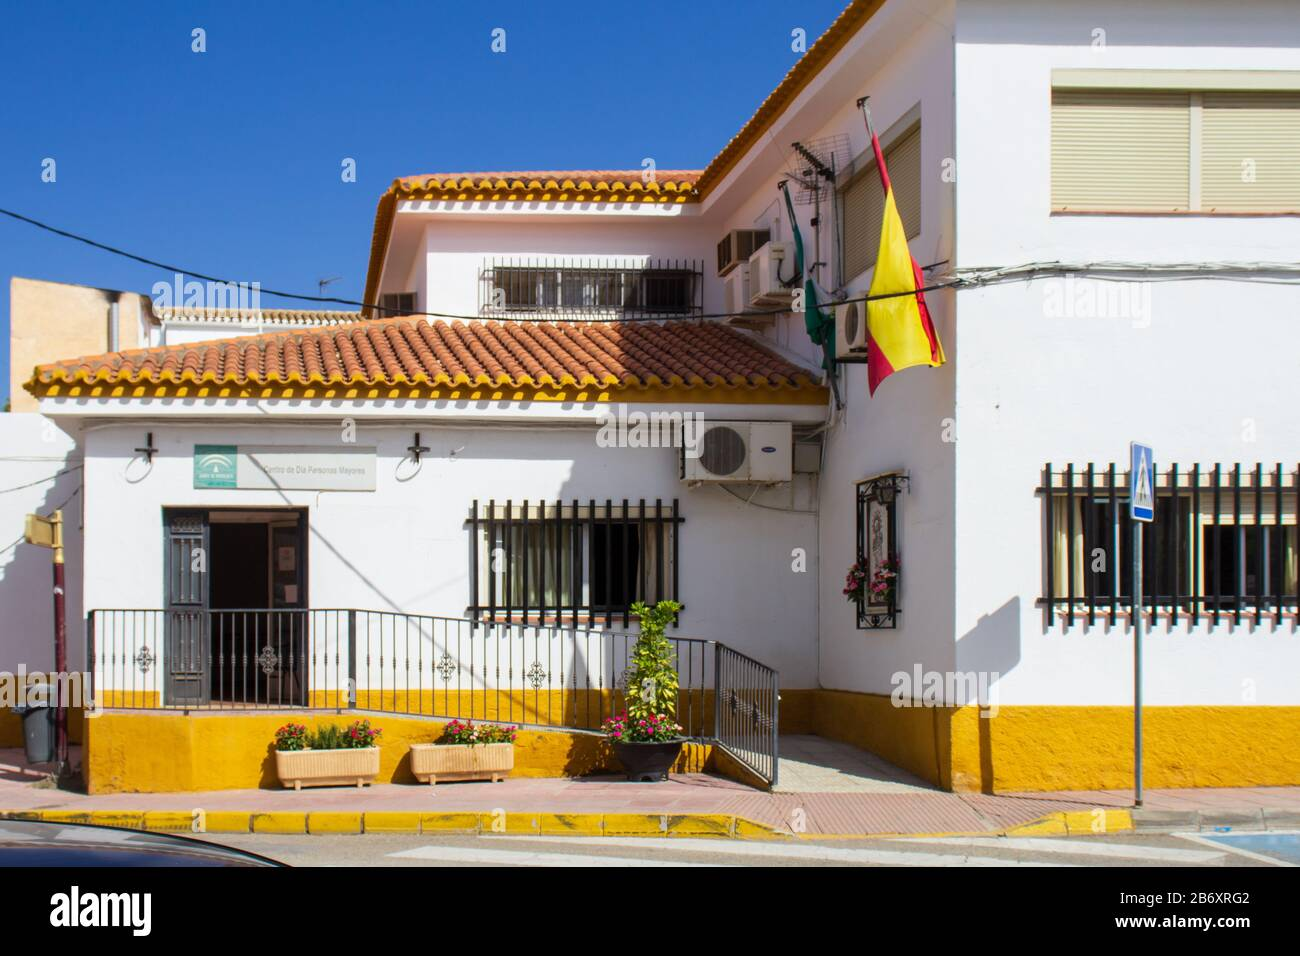 Elderly Persons Day Center in Albox Andalucia Spain Stock Photo